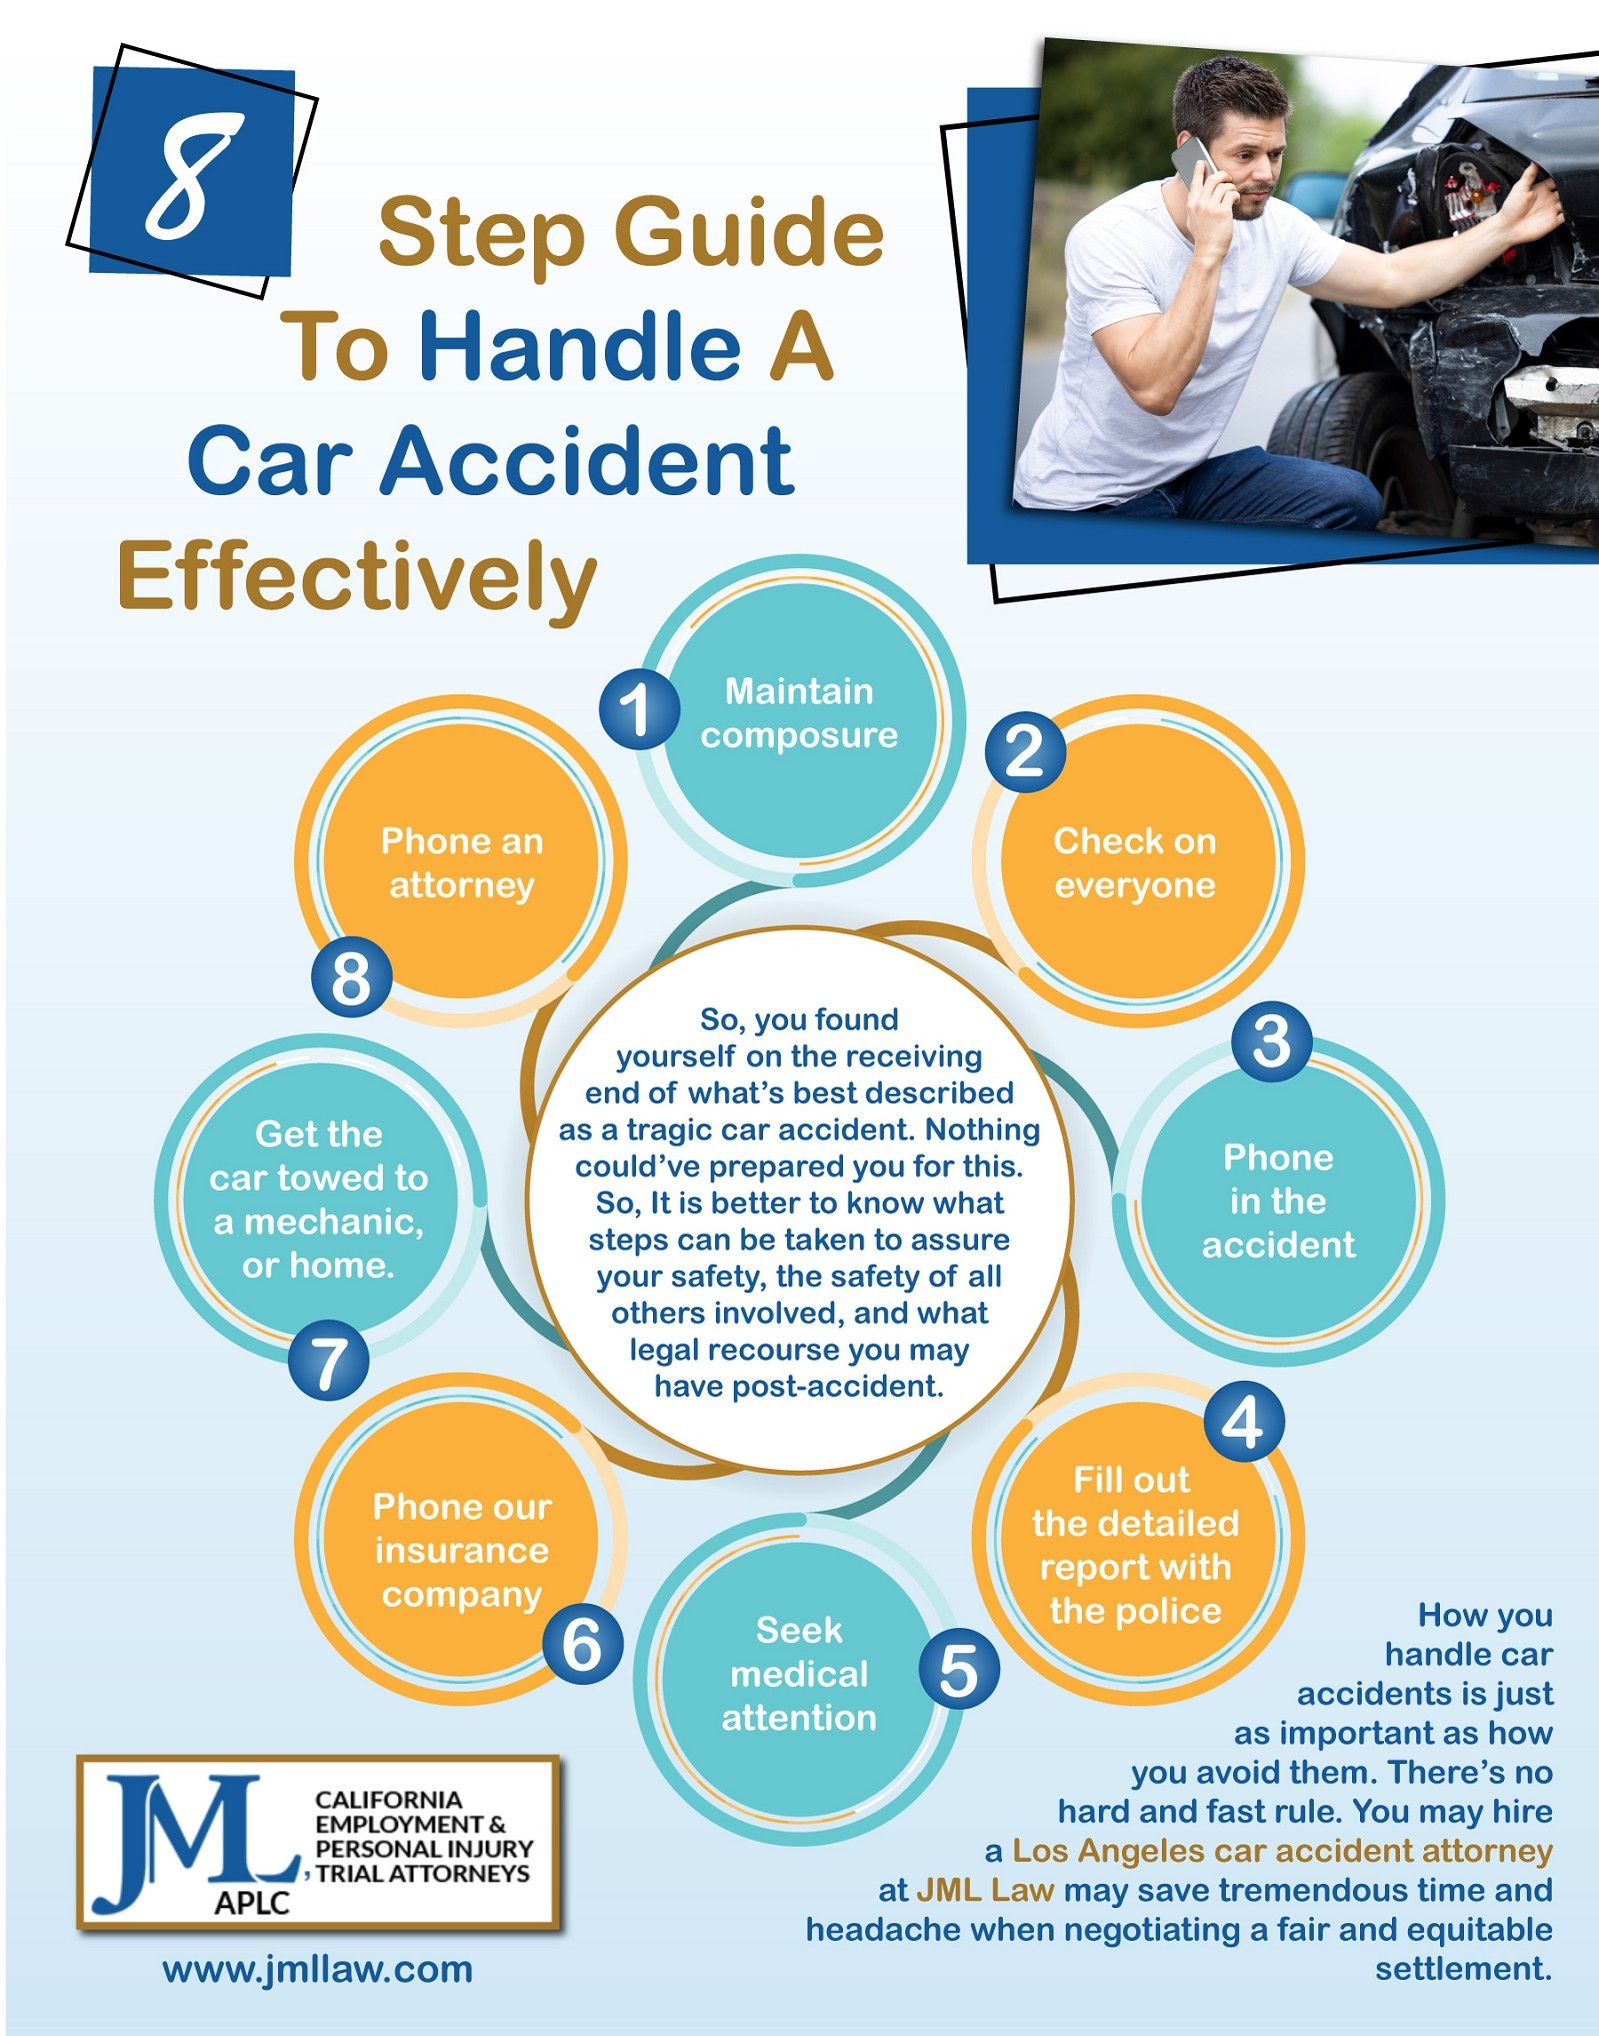 8 Step Guide To Handle A Car Accident Effectively